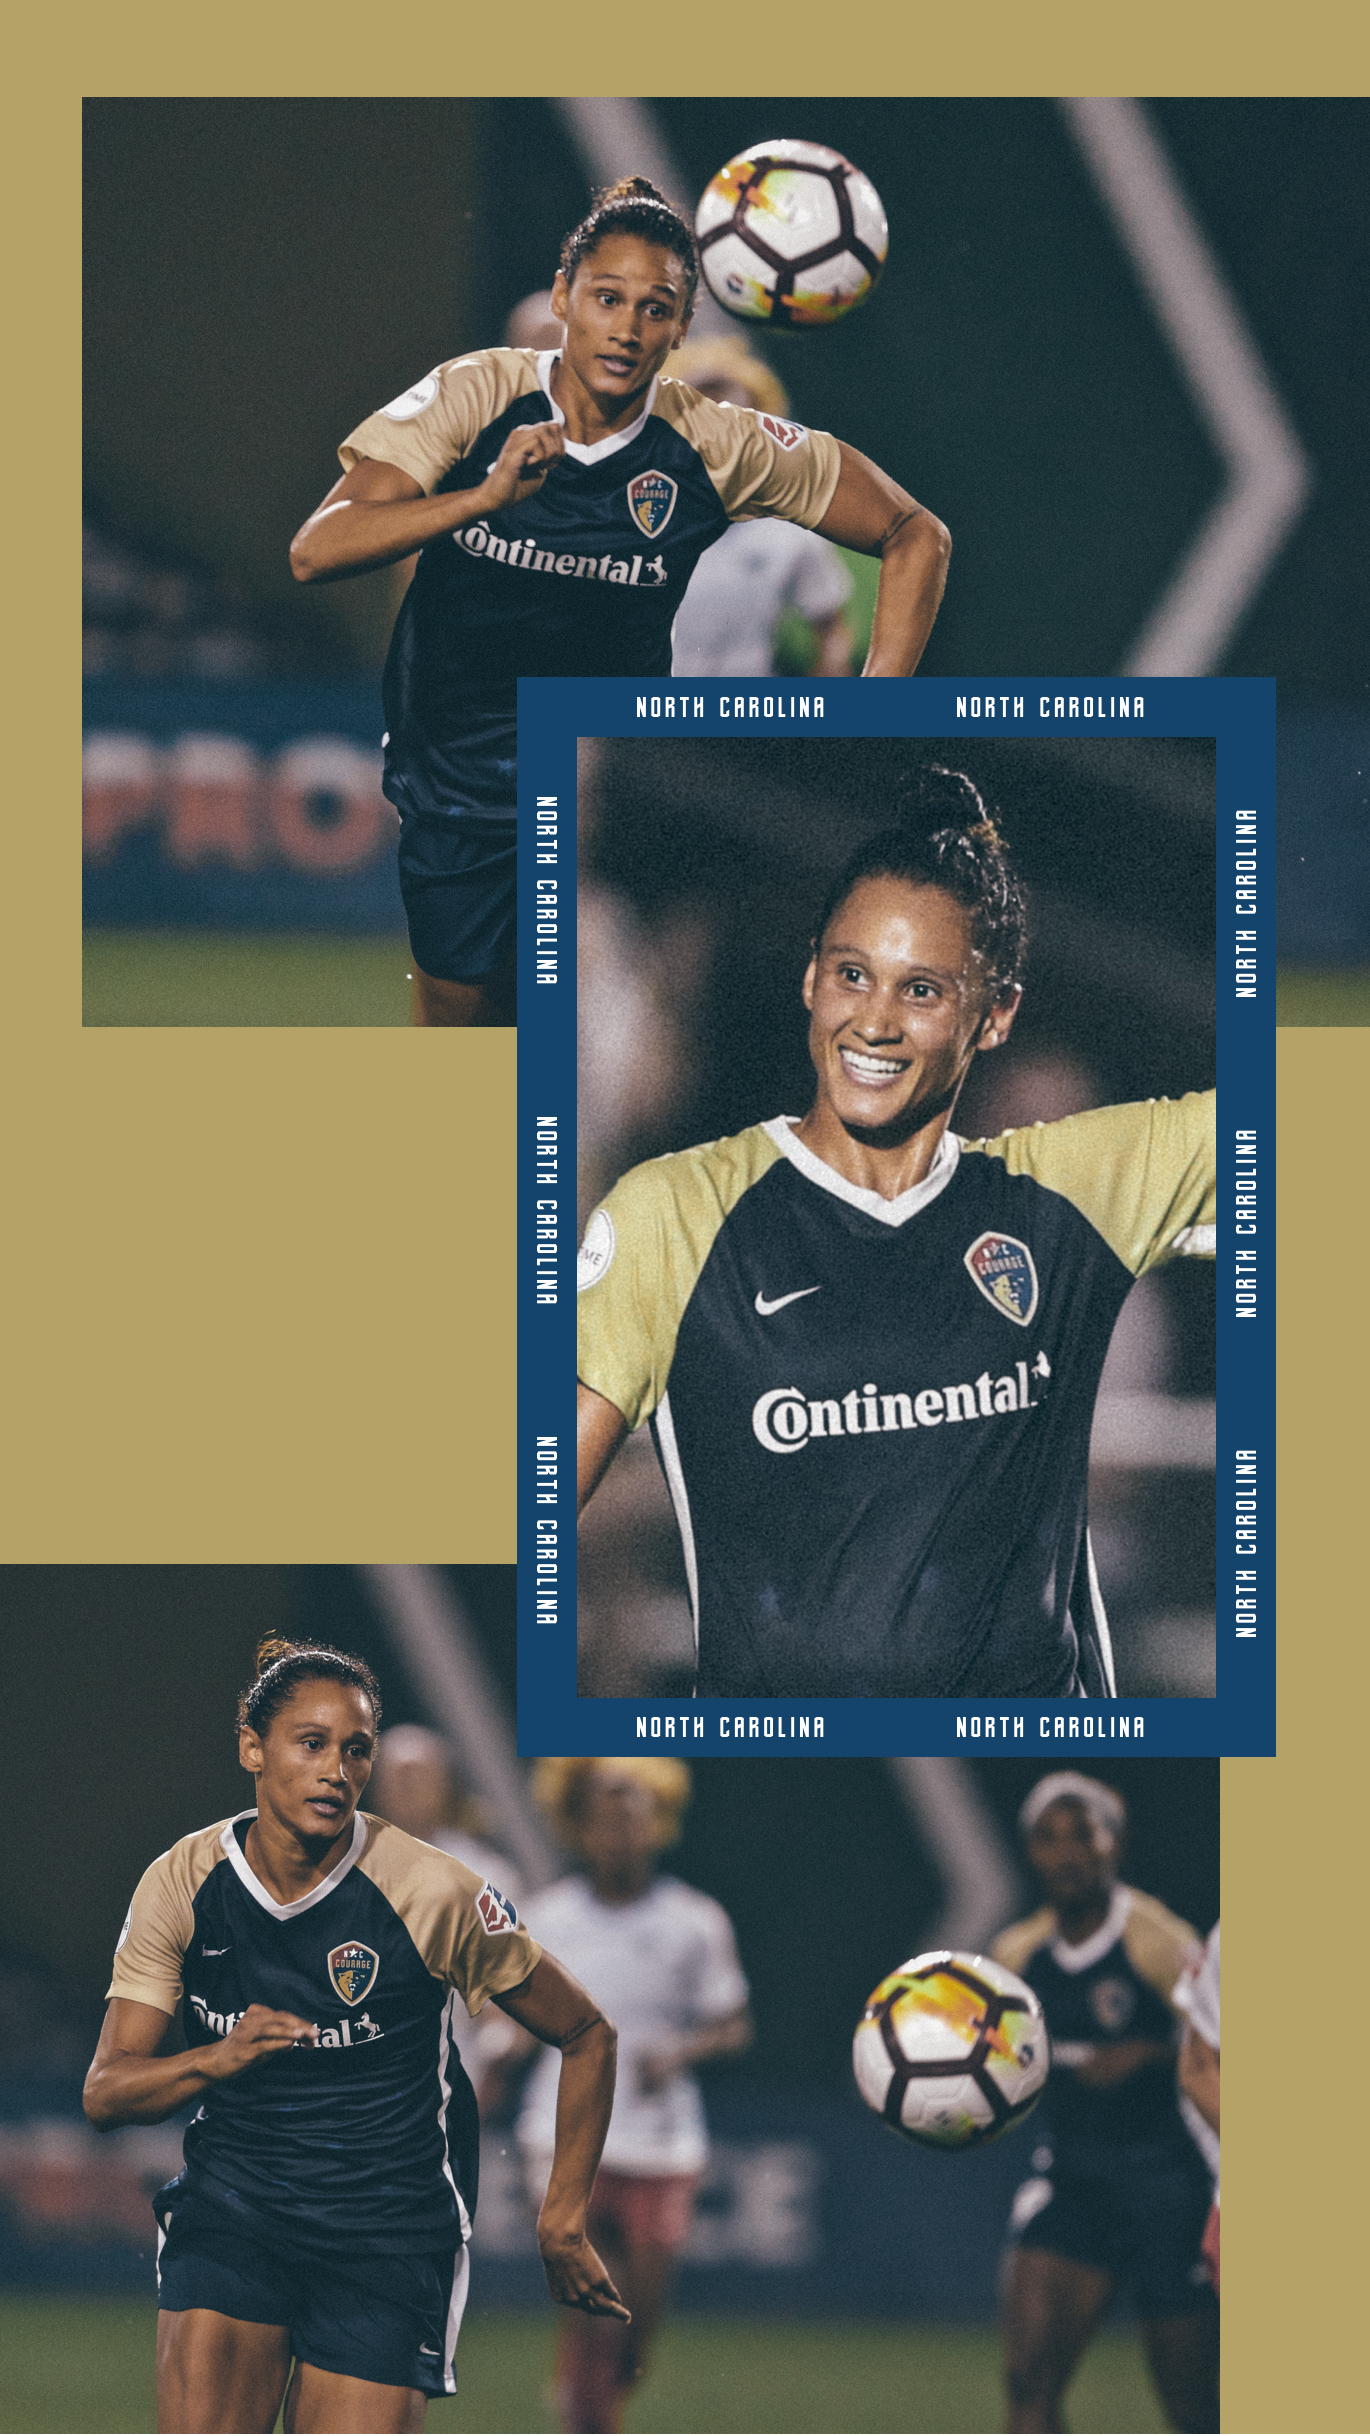 NIKE-NWSL-IG-STORY-13.png